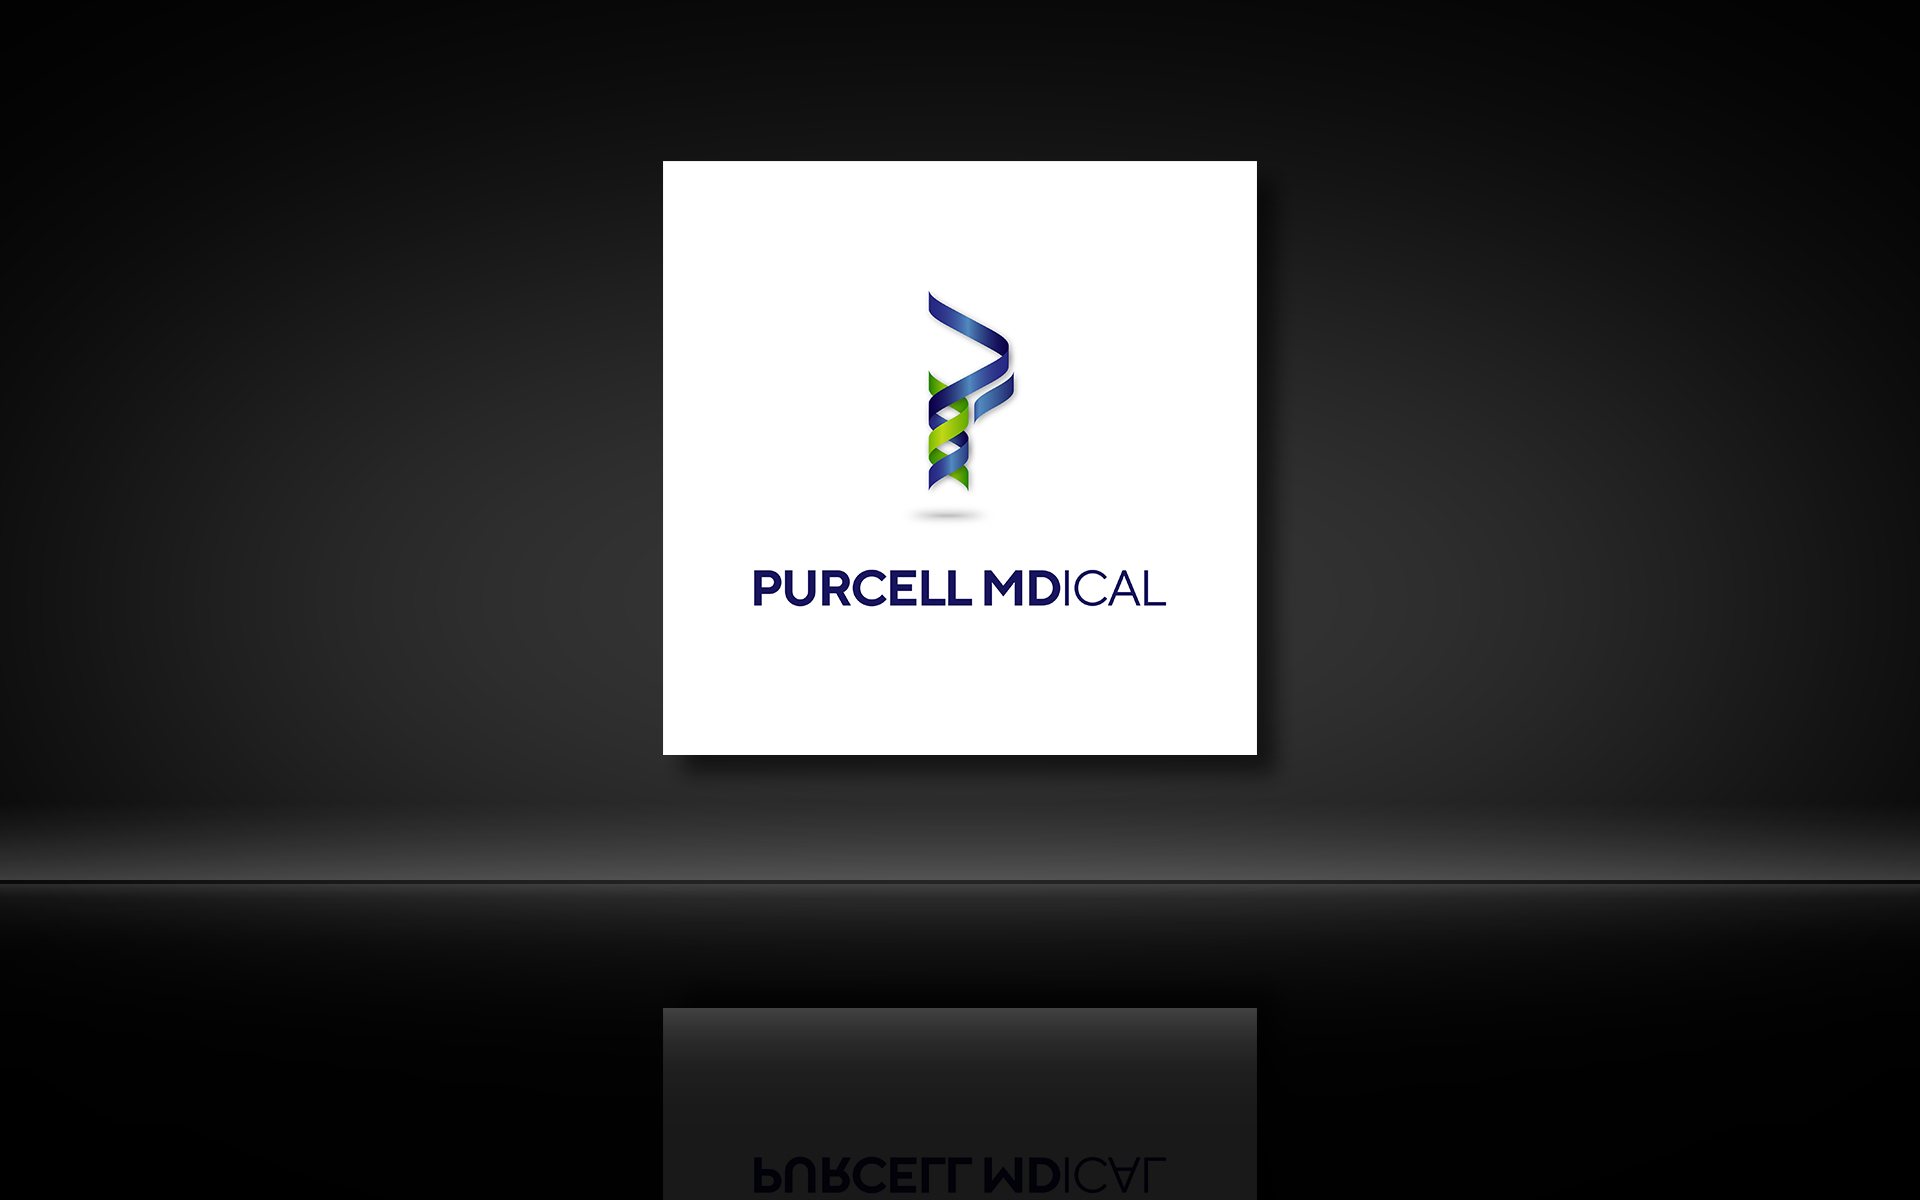 Purcell MDical Logo by Graham Hnedak Brand G Creative gallery addition 03 June 2019.jpg